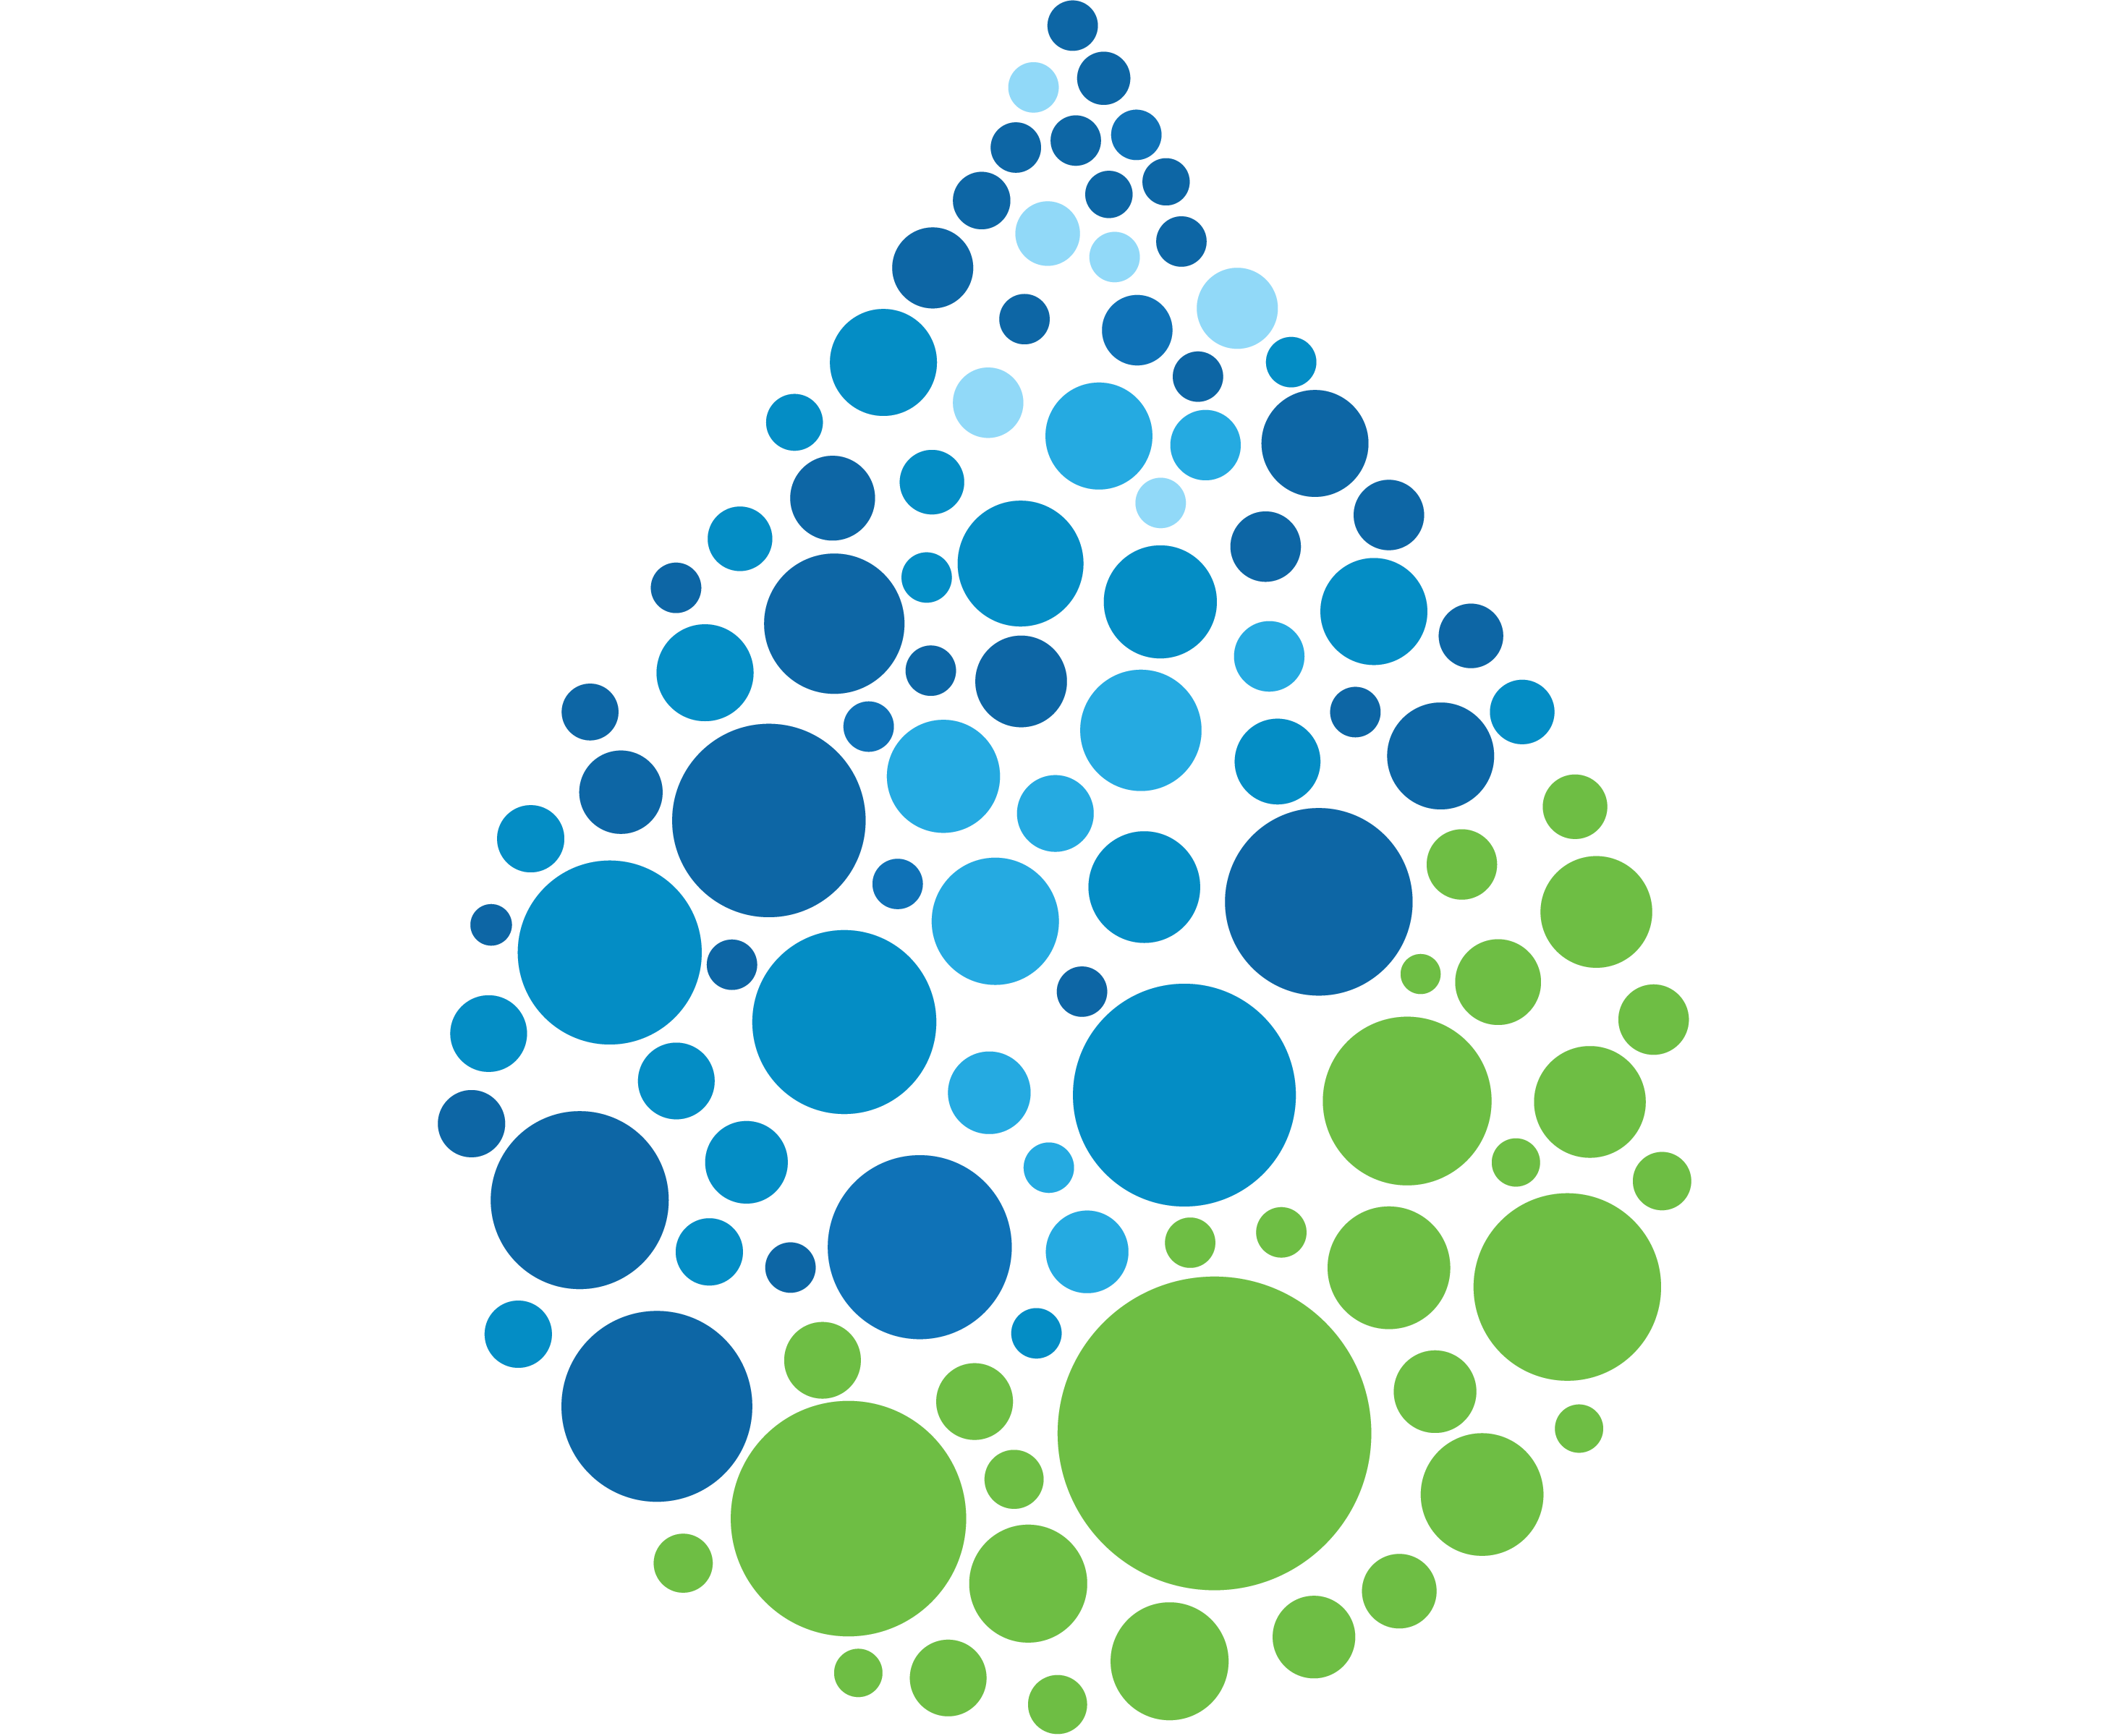 Water drop with different sizes circles within it of blue and green